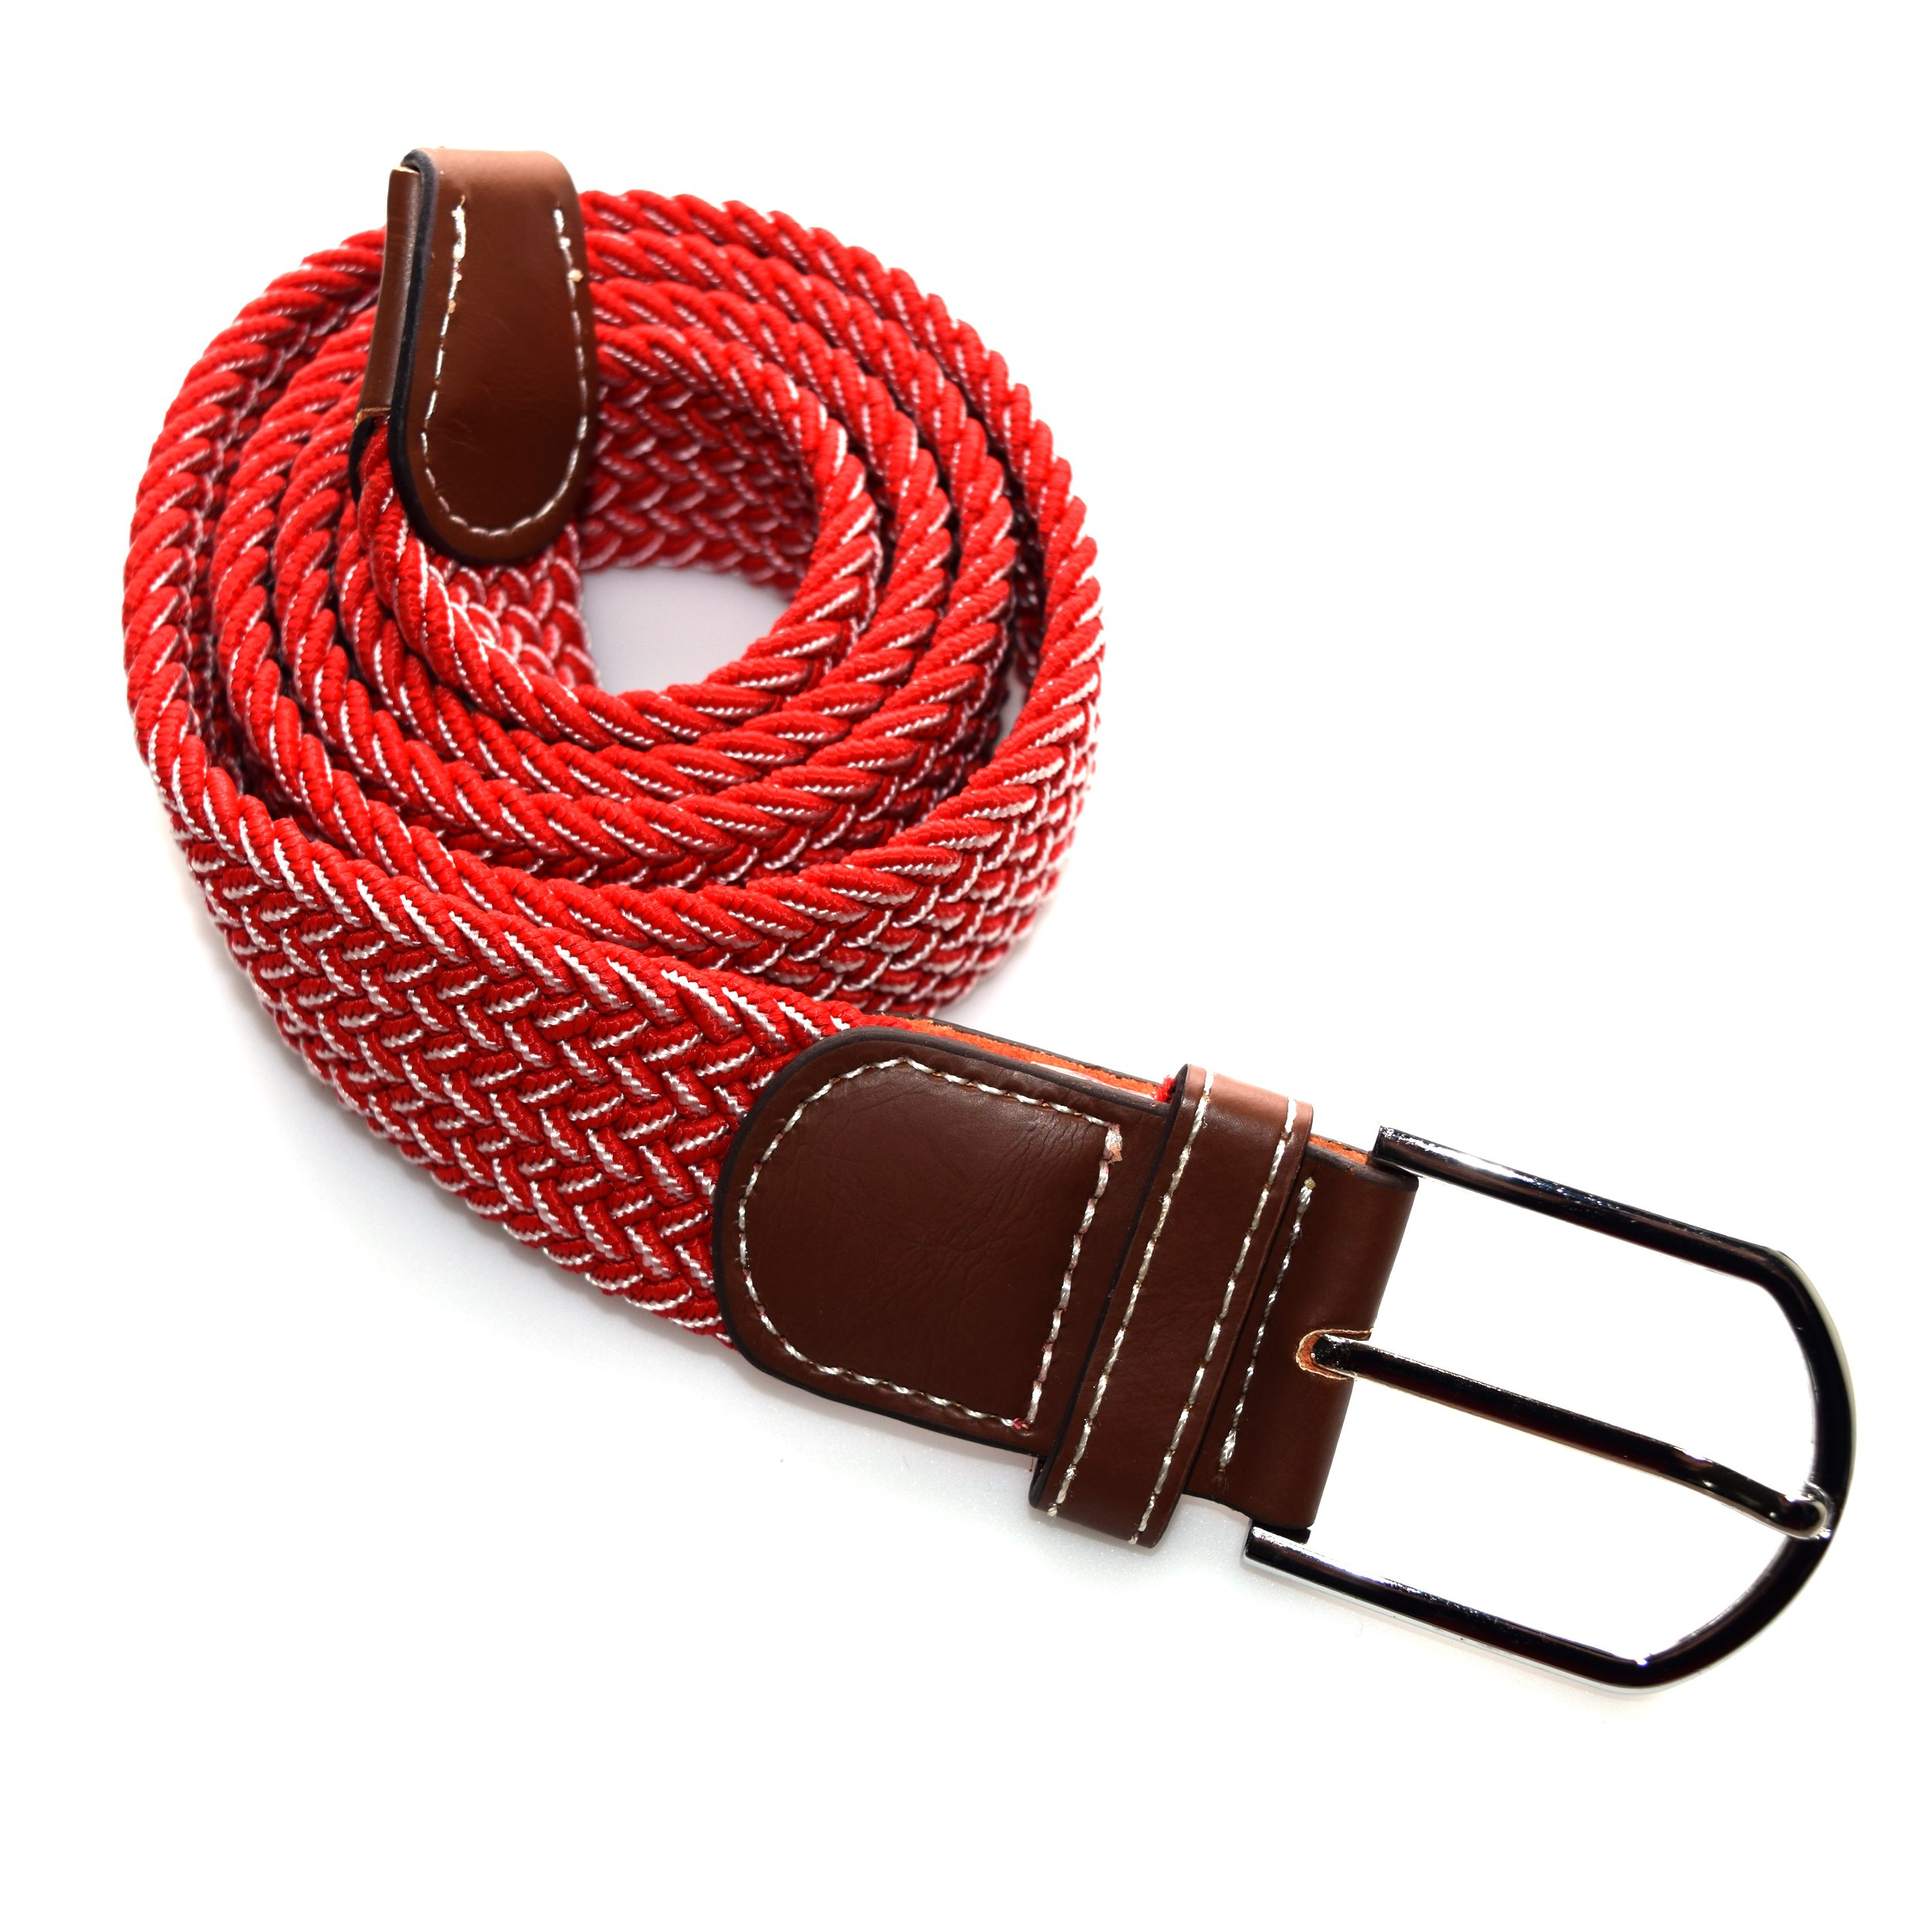 Wits + Beaux Men's Elastic Fabric Woven Braided Stretch Belt (Adjustable Fit) Fun, Colorful Golf Casual Wear (Red White Interlace)